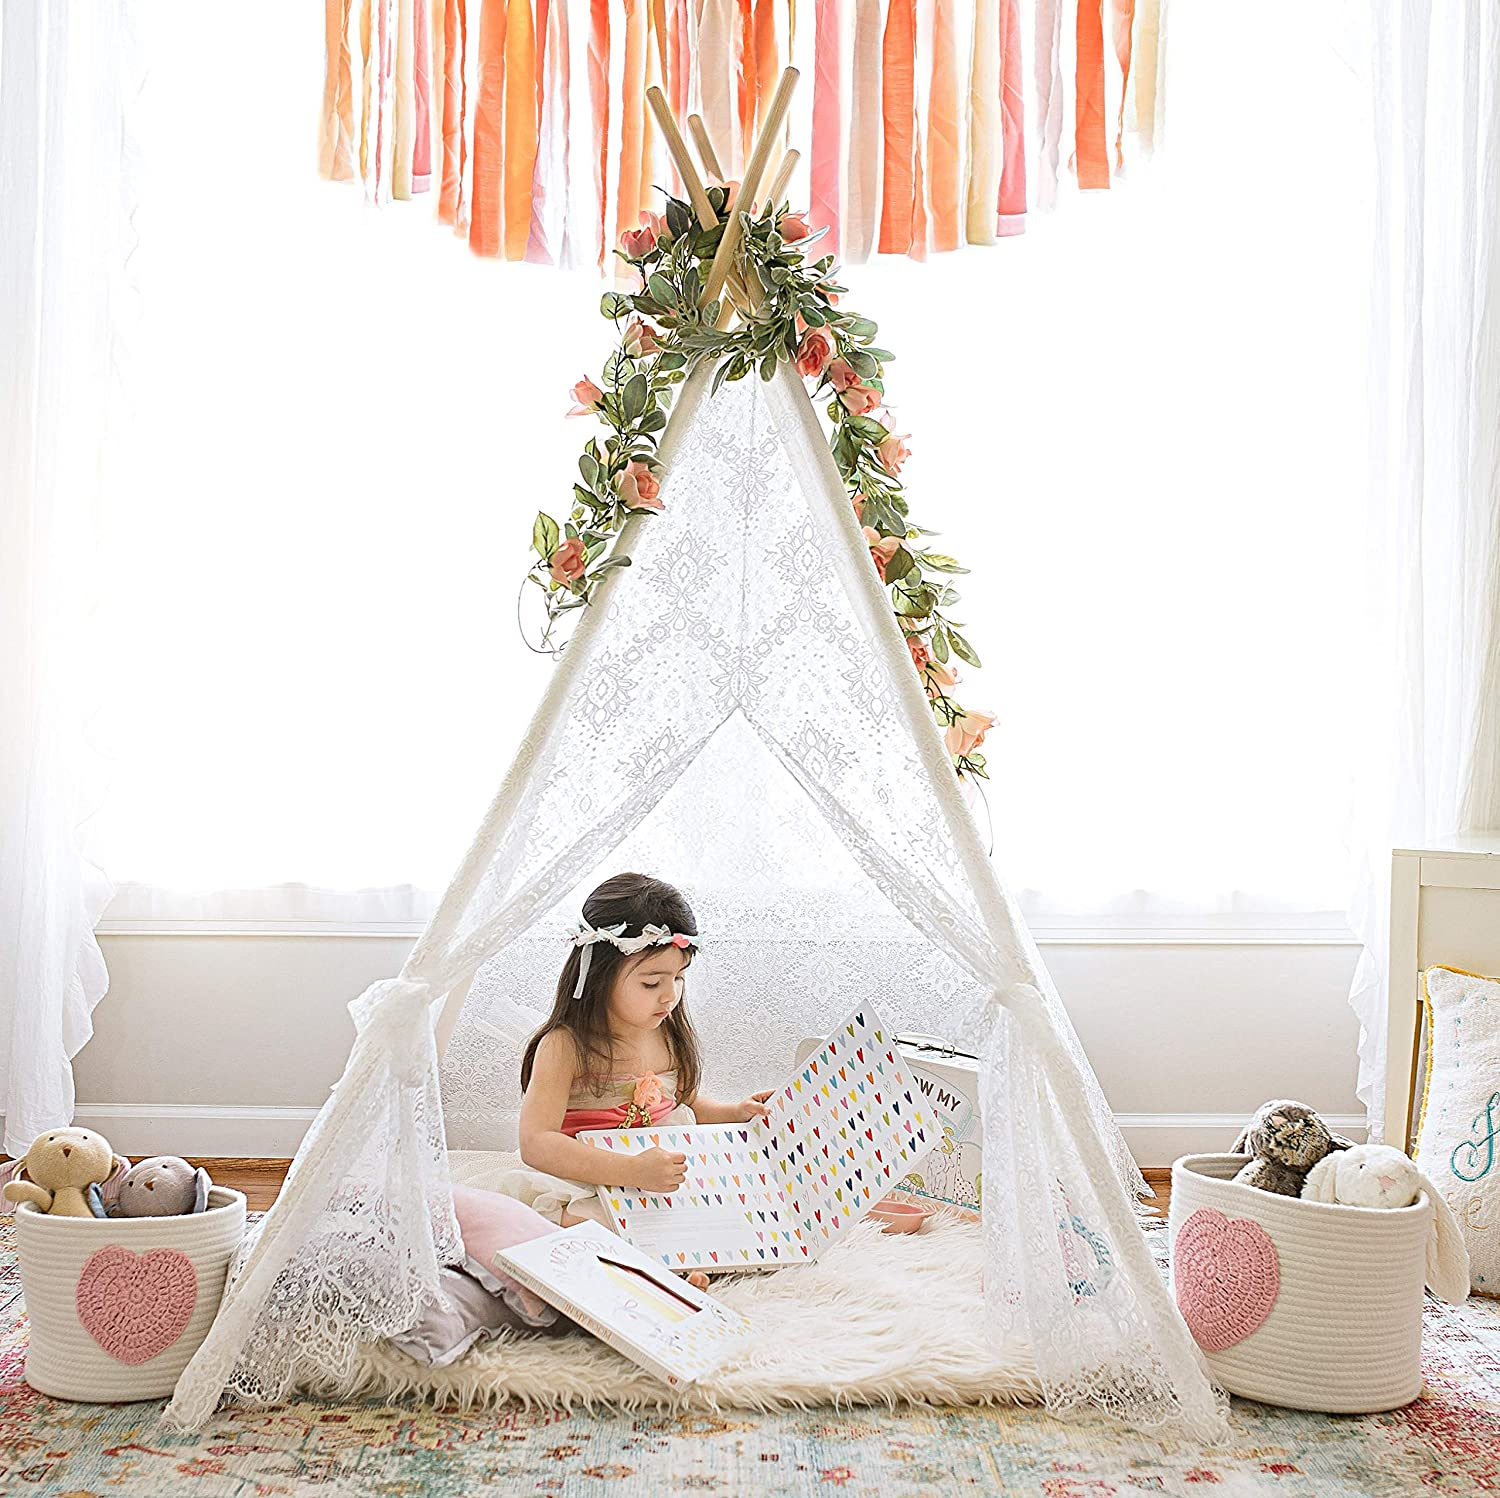 Kids Teepee Tent for Girls, Sheer Lace Indoor and Outdoor Canopy and Creative Play Space | White Room Decor | Bohemian Theme Lace TINY LAND INC.